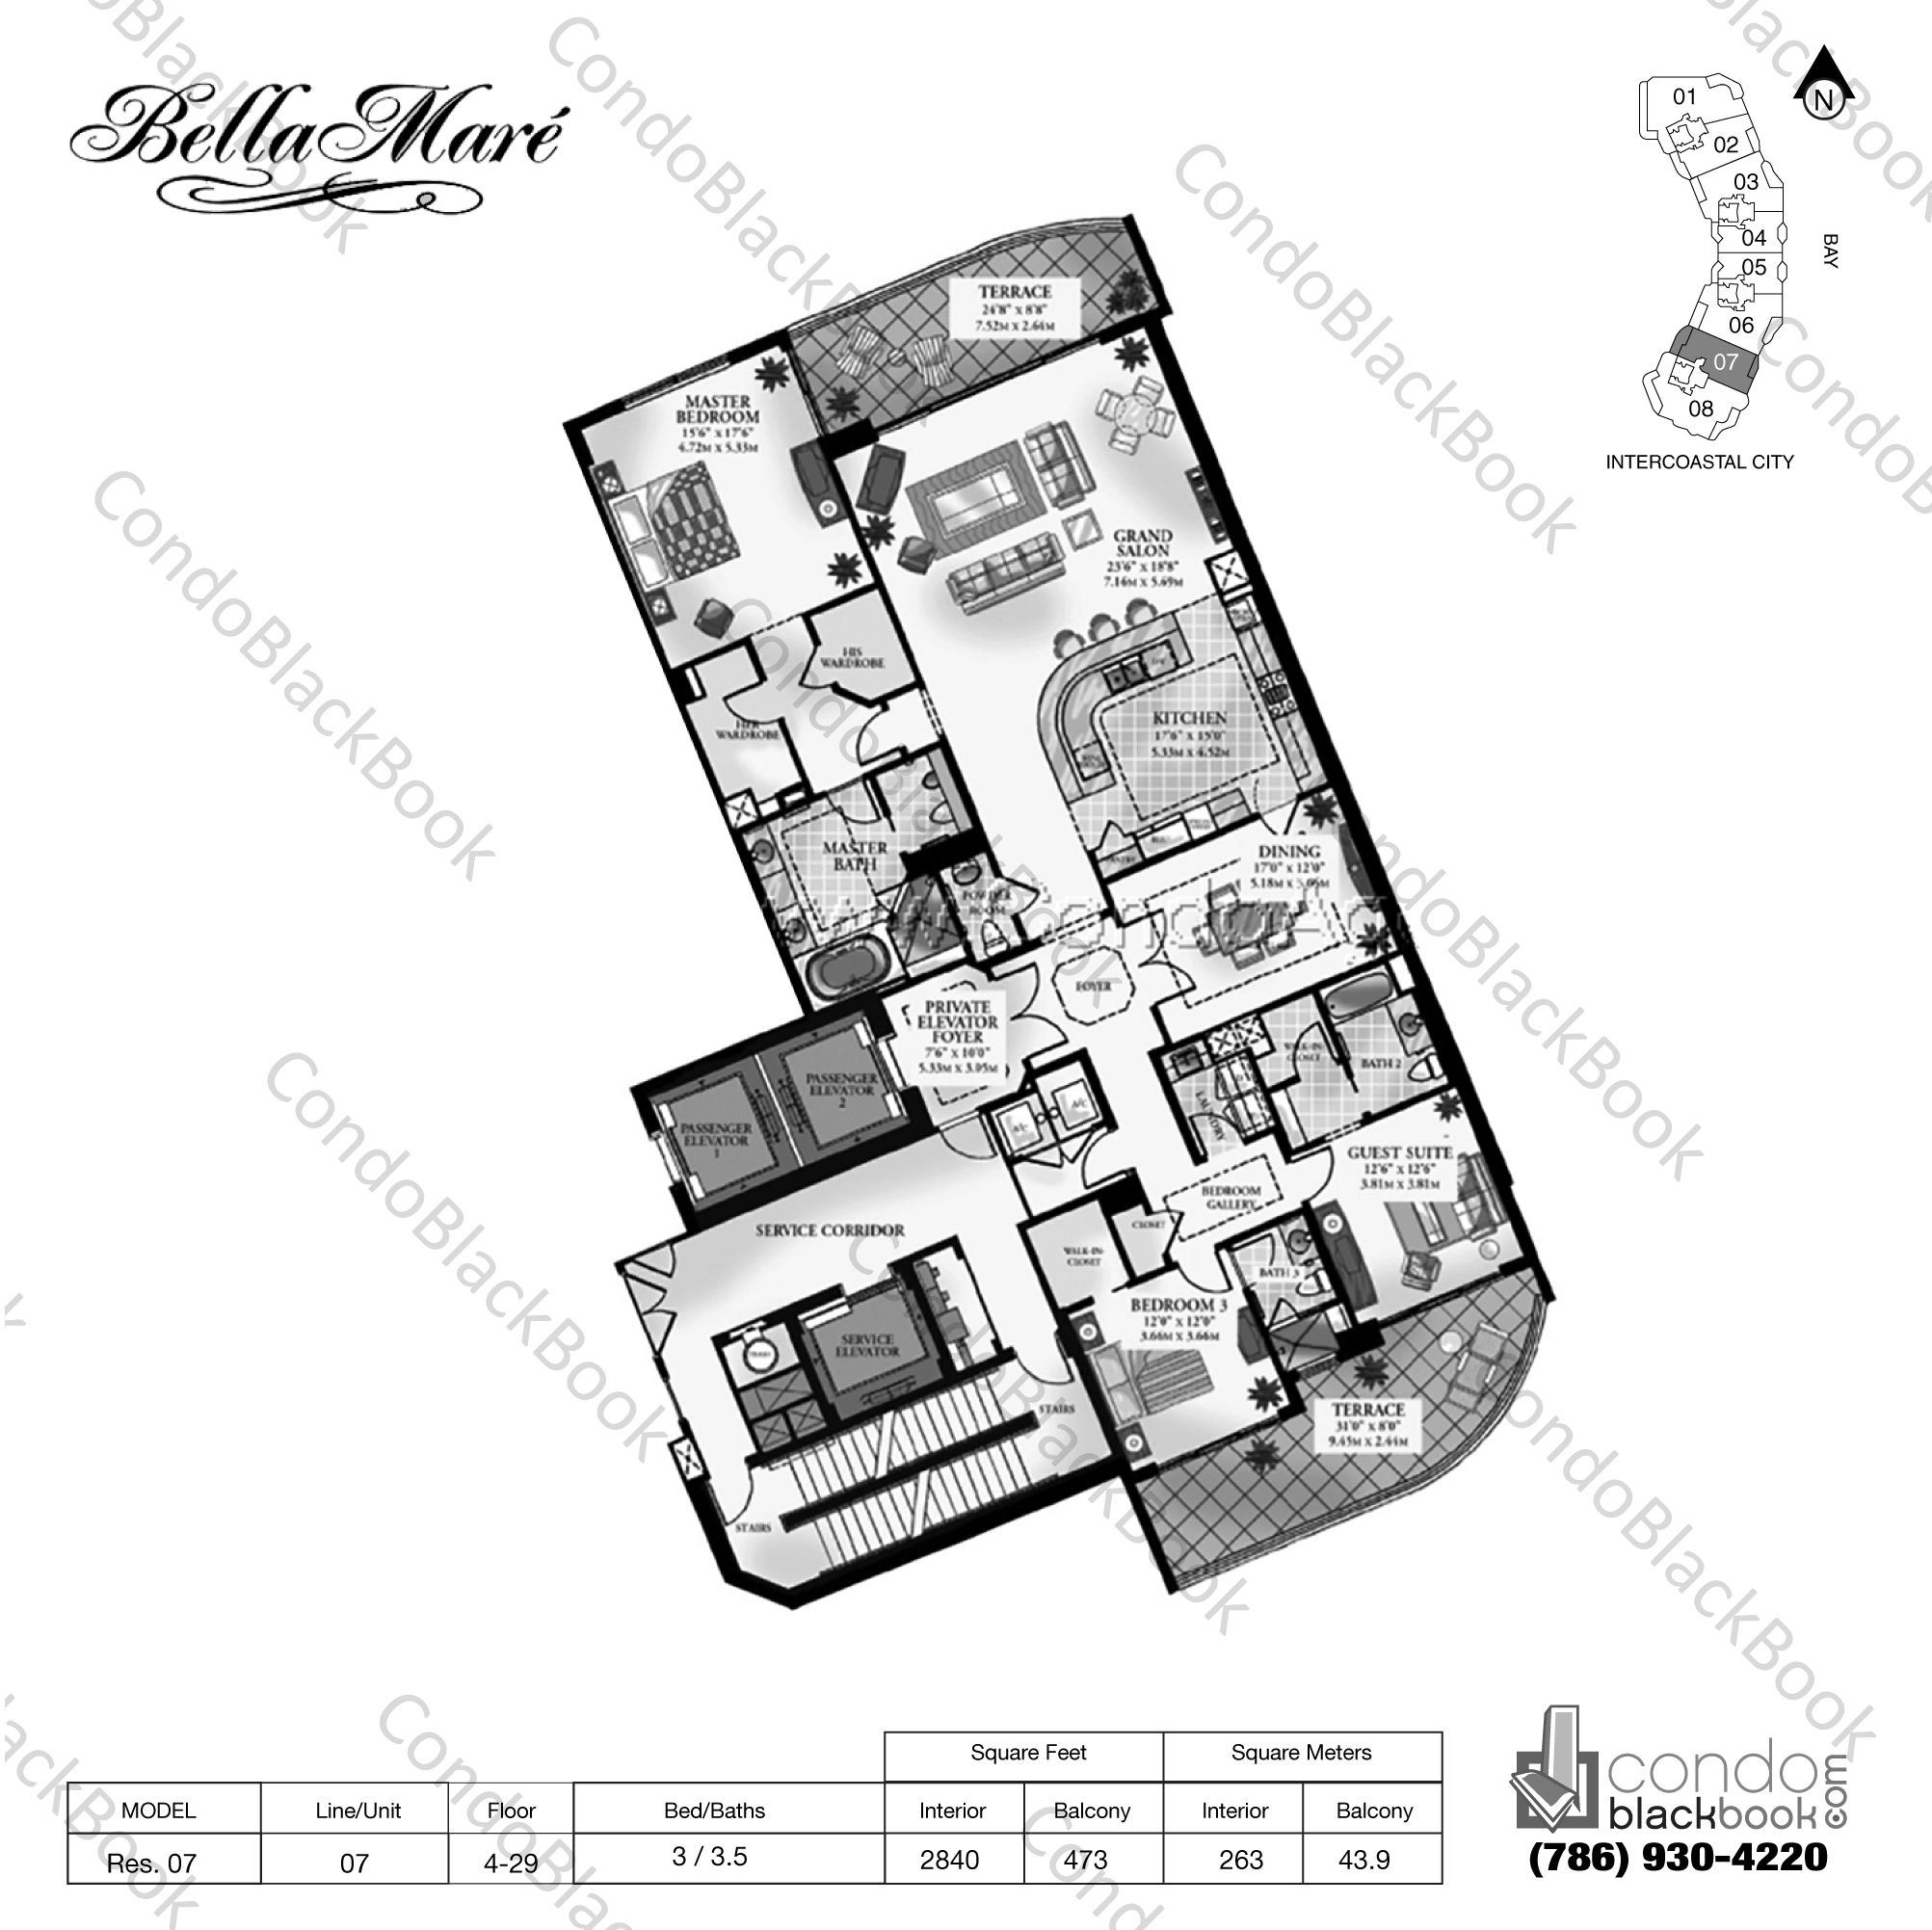 Floor plan for Bella Mare Aventura, model Residence 07, line 07, 3 / 3.5 bedrooms, 2840 sq ft